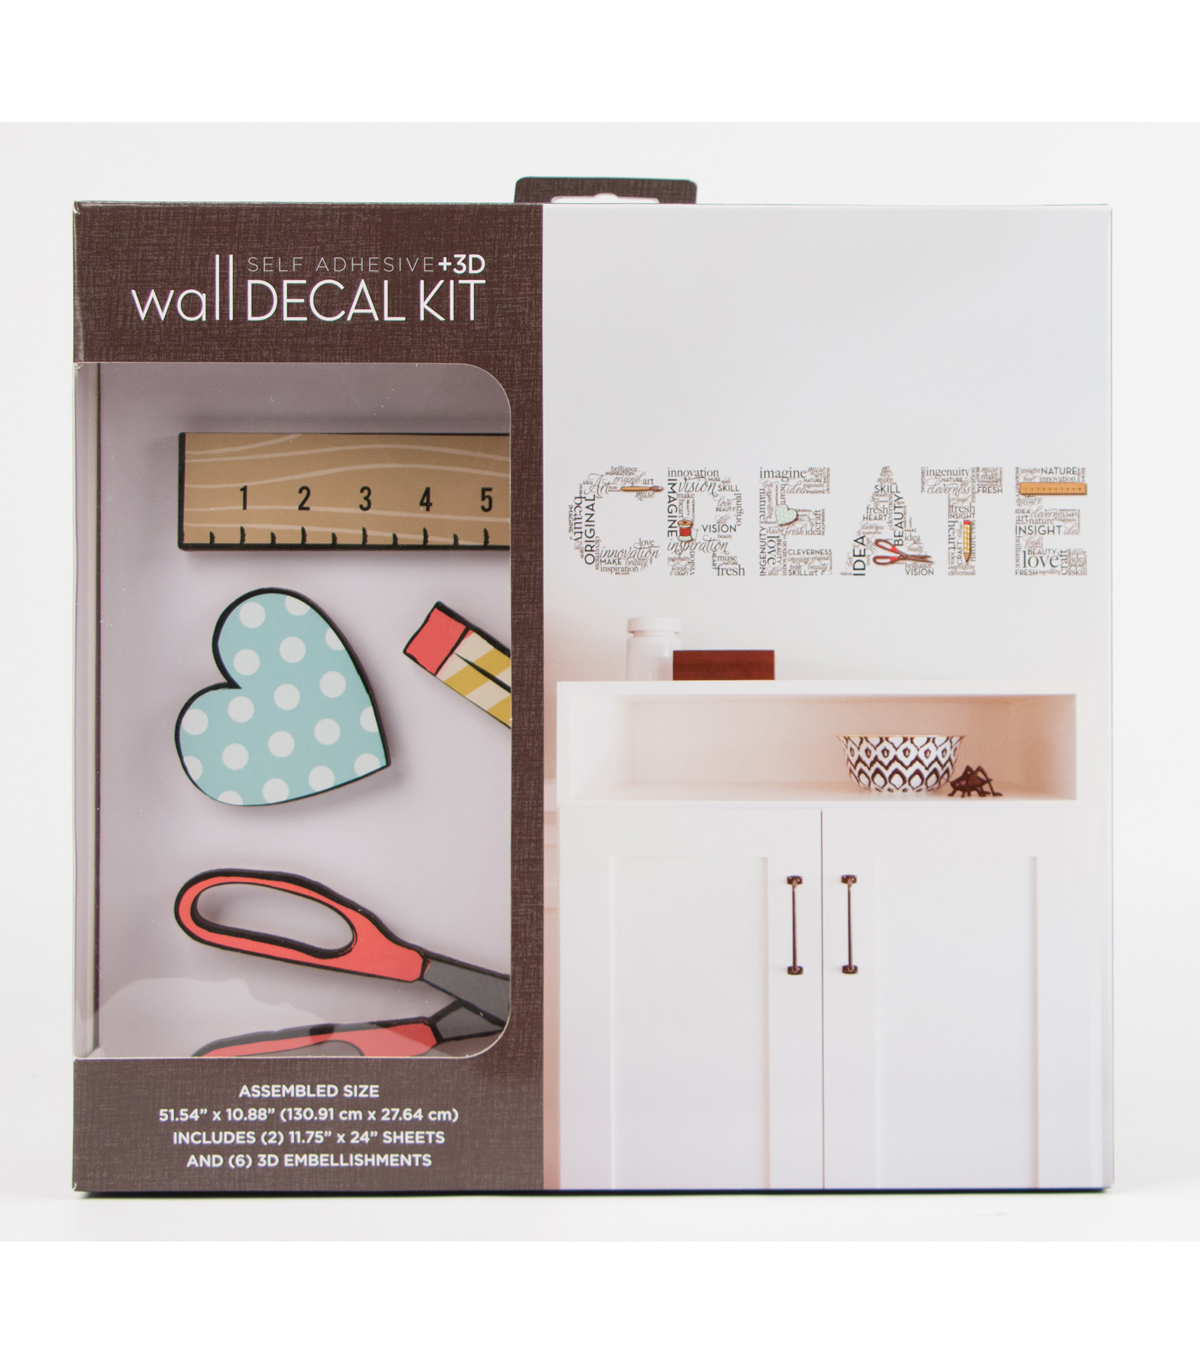 Self Adhesive & 3D Wall Decal Kit-Create